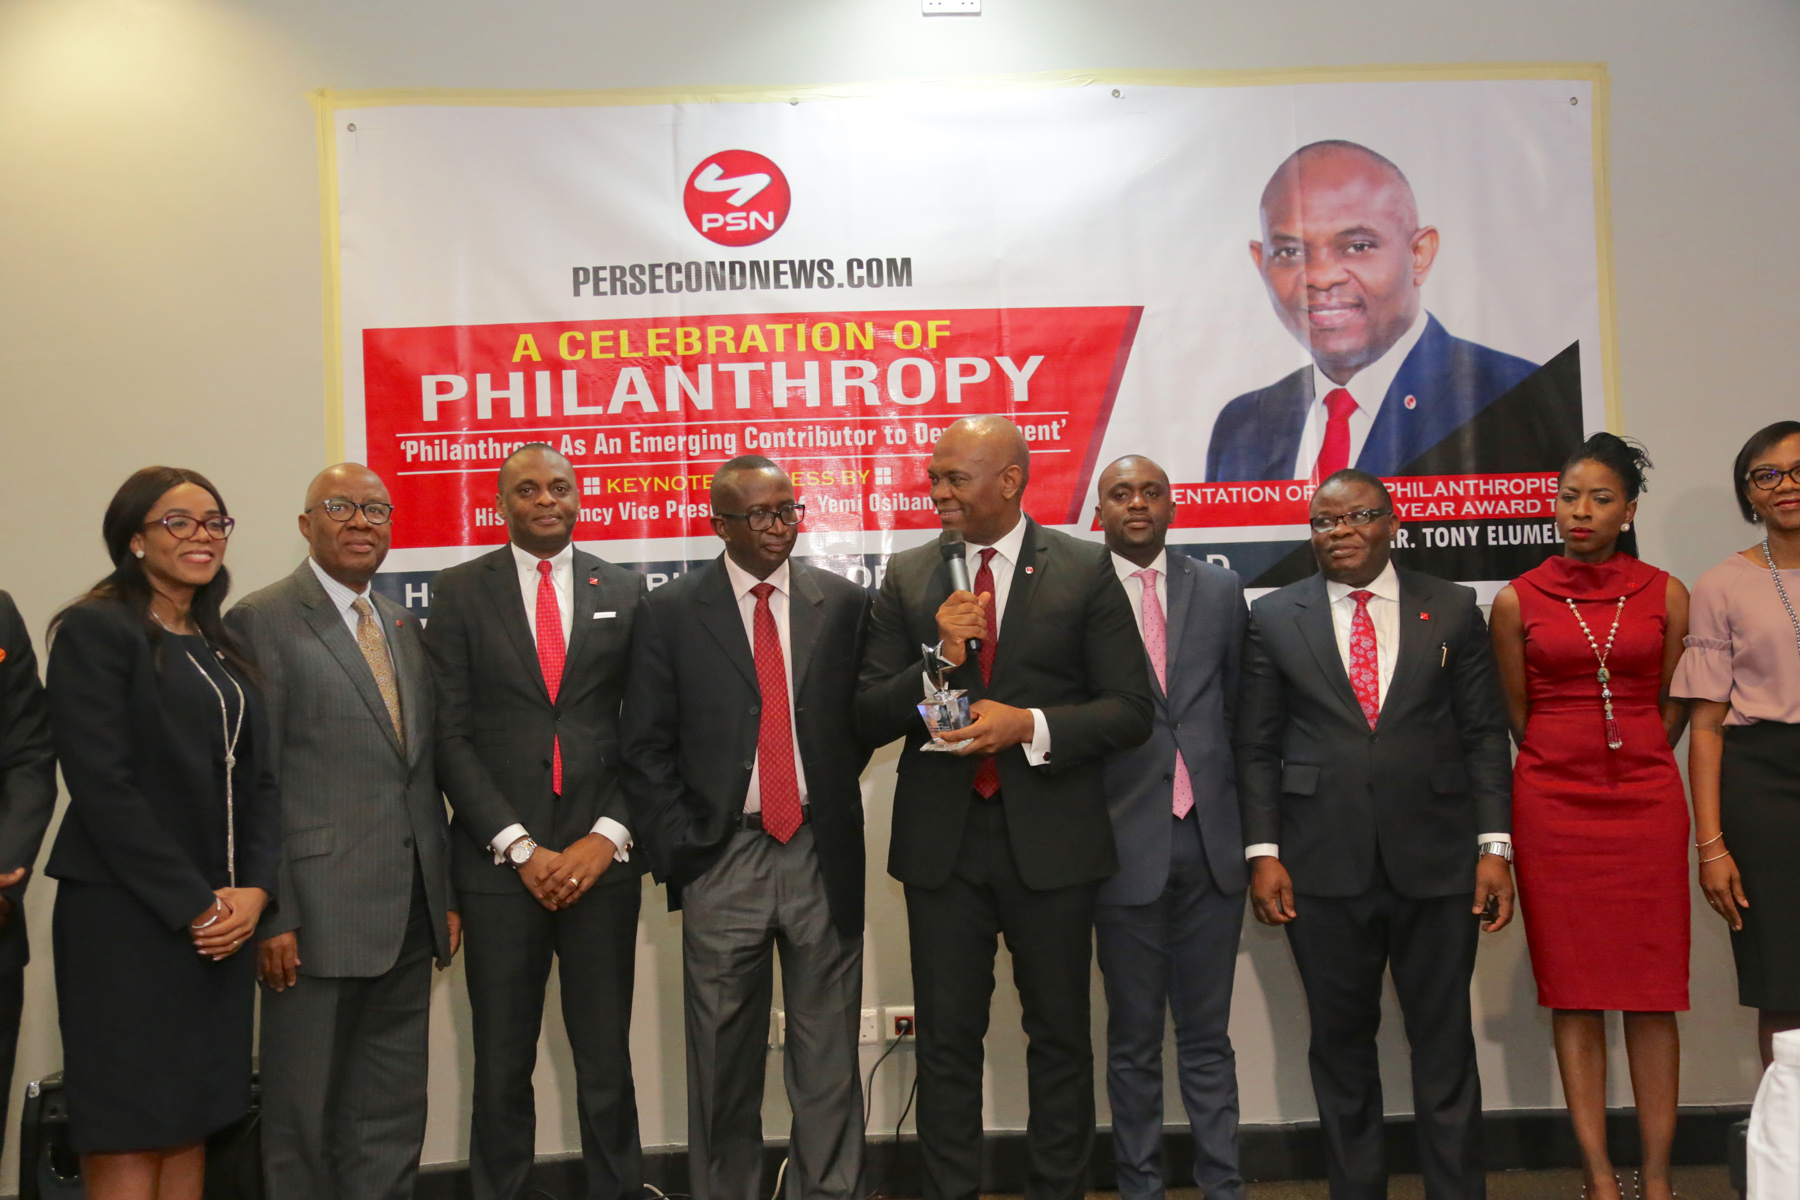 Ndoma-Egba on Elumelu: He's a gift to Africa, an inspiration to the World